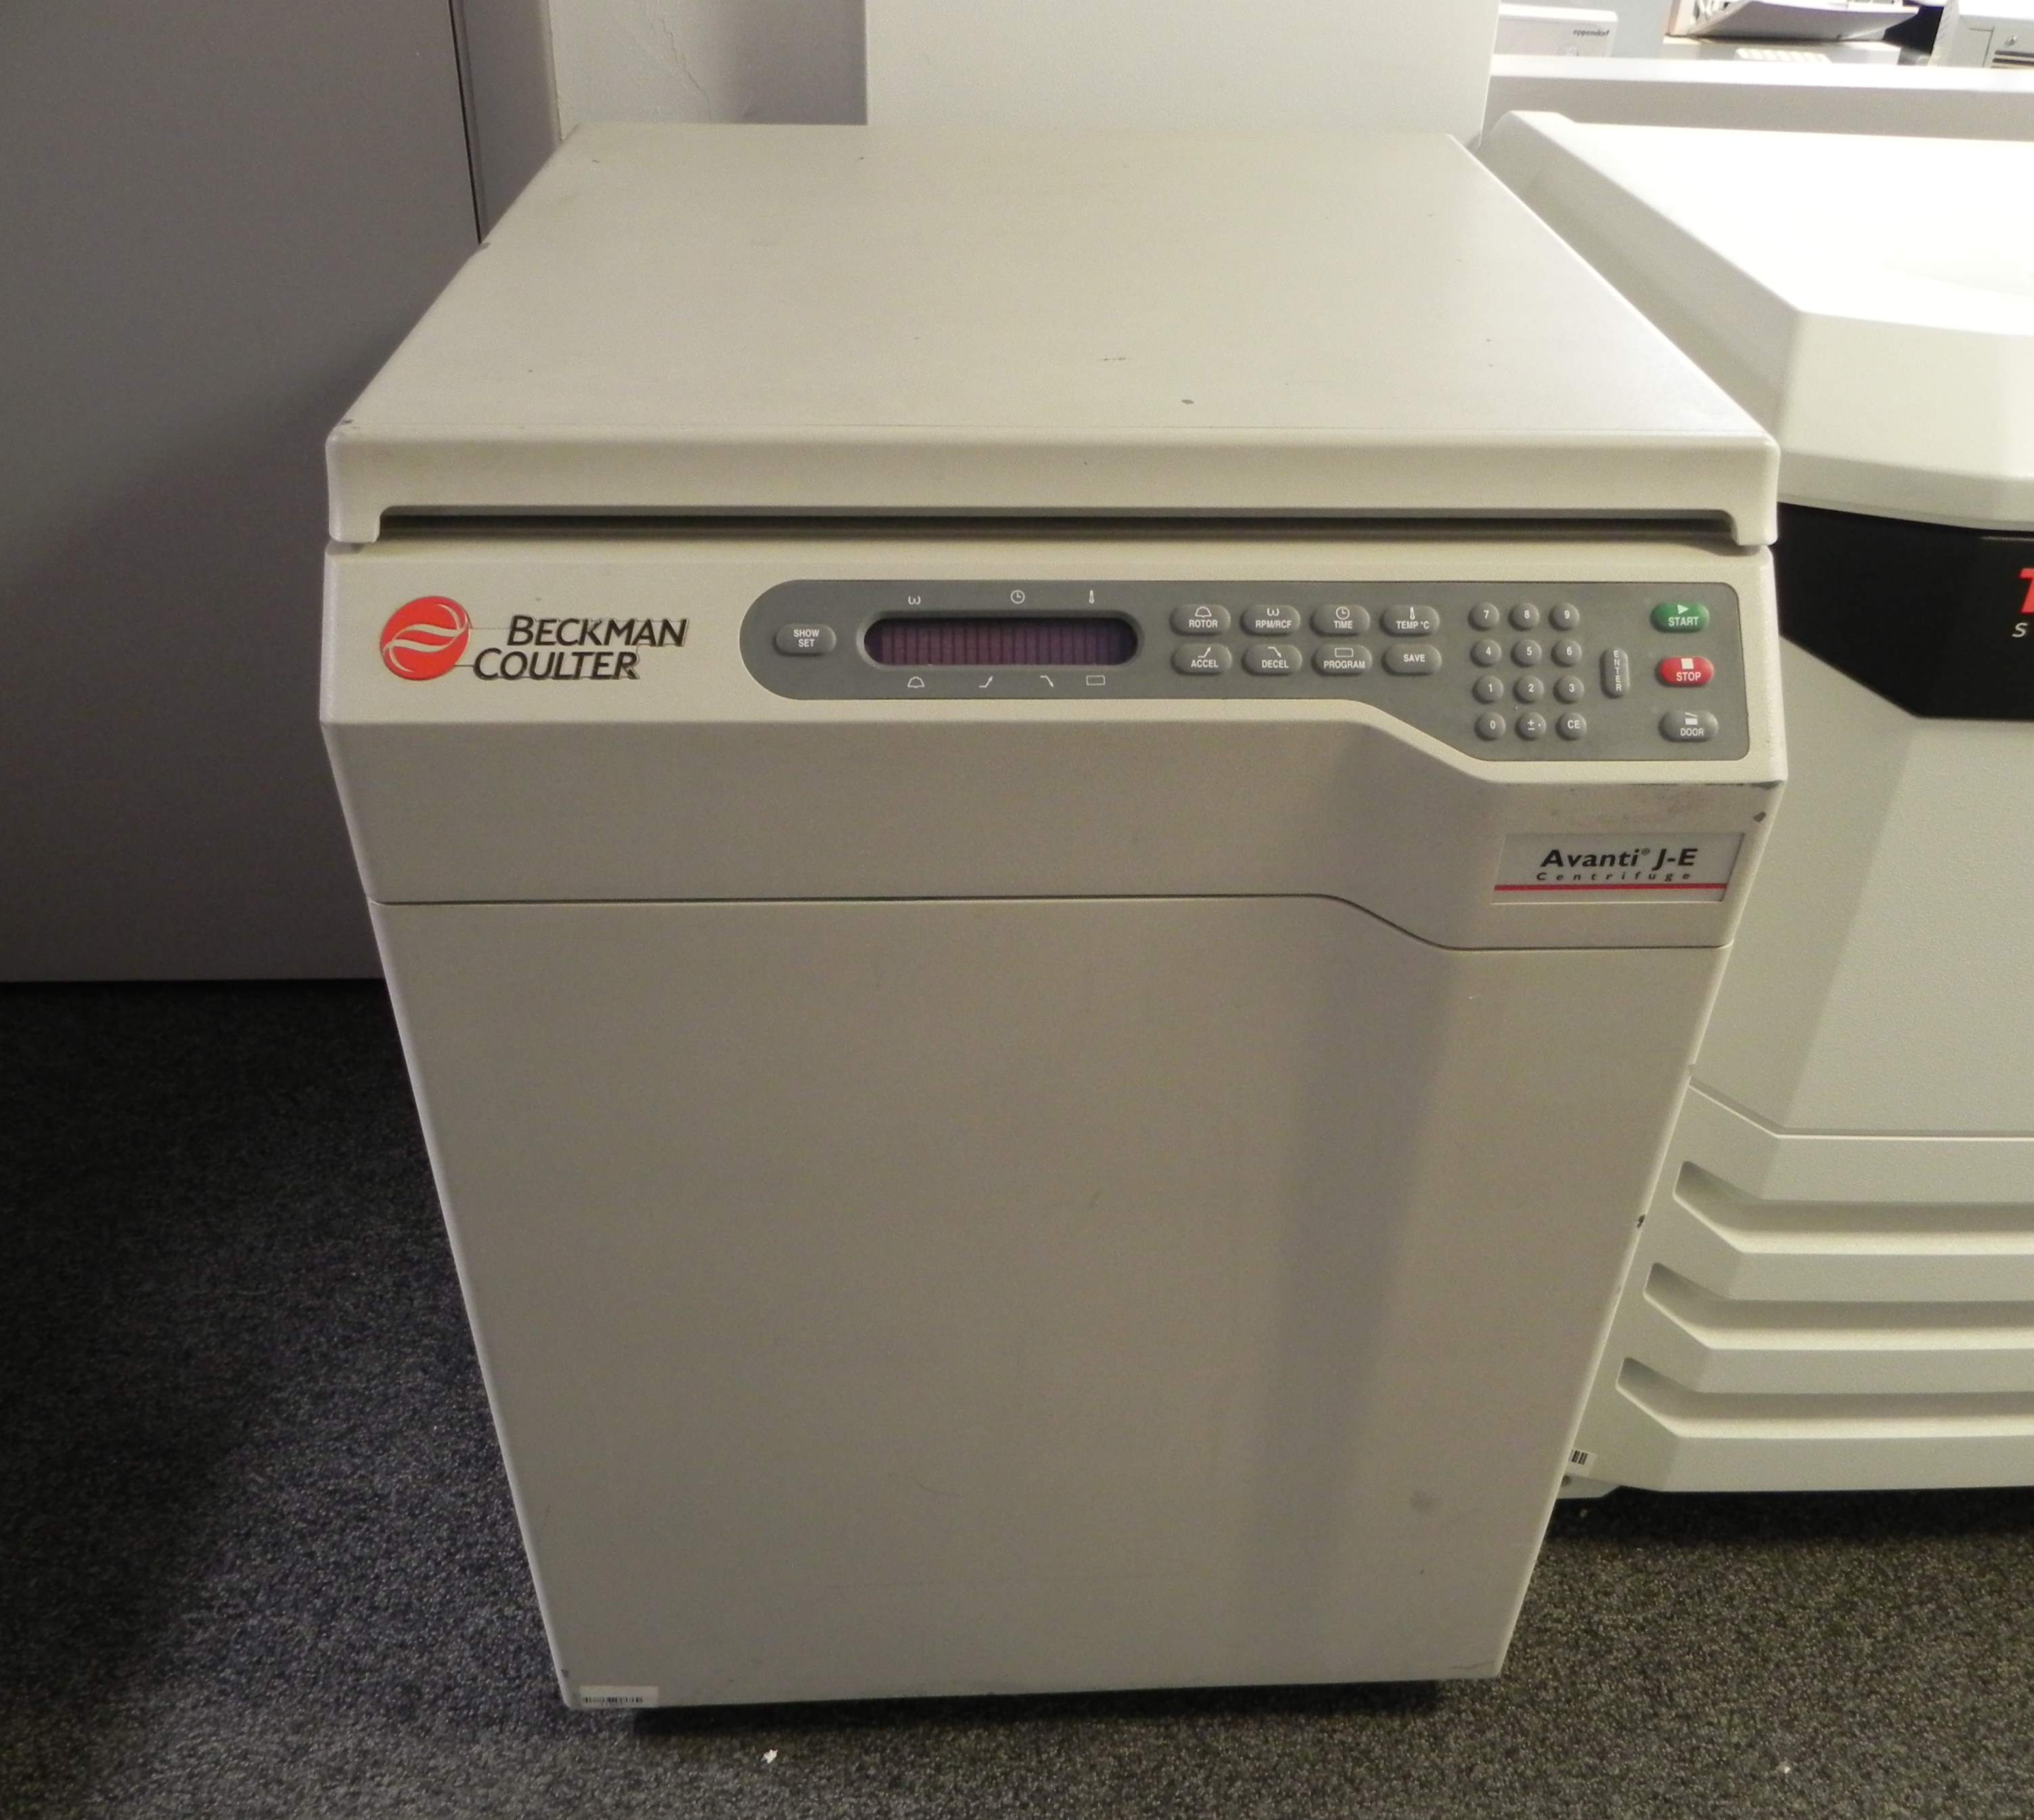 Beckman Coulter Avanti J-E Floor Super Speed Centrifuge